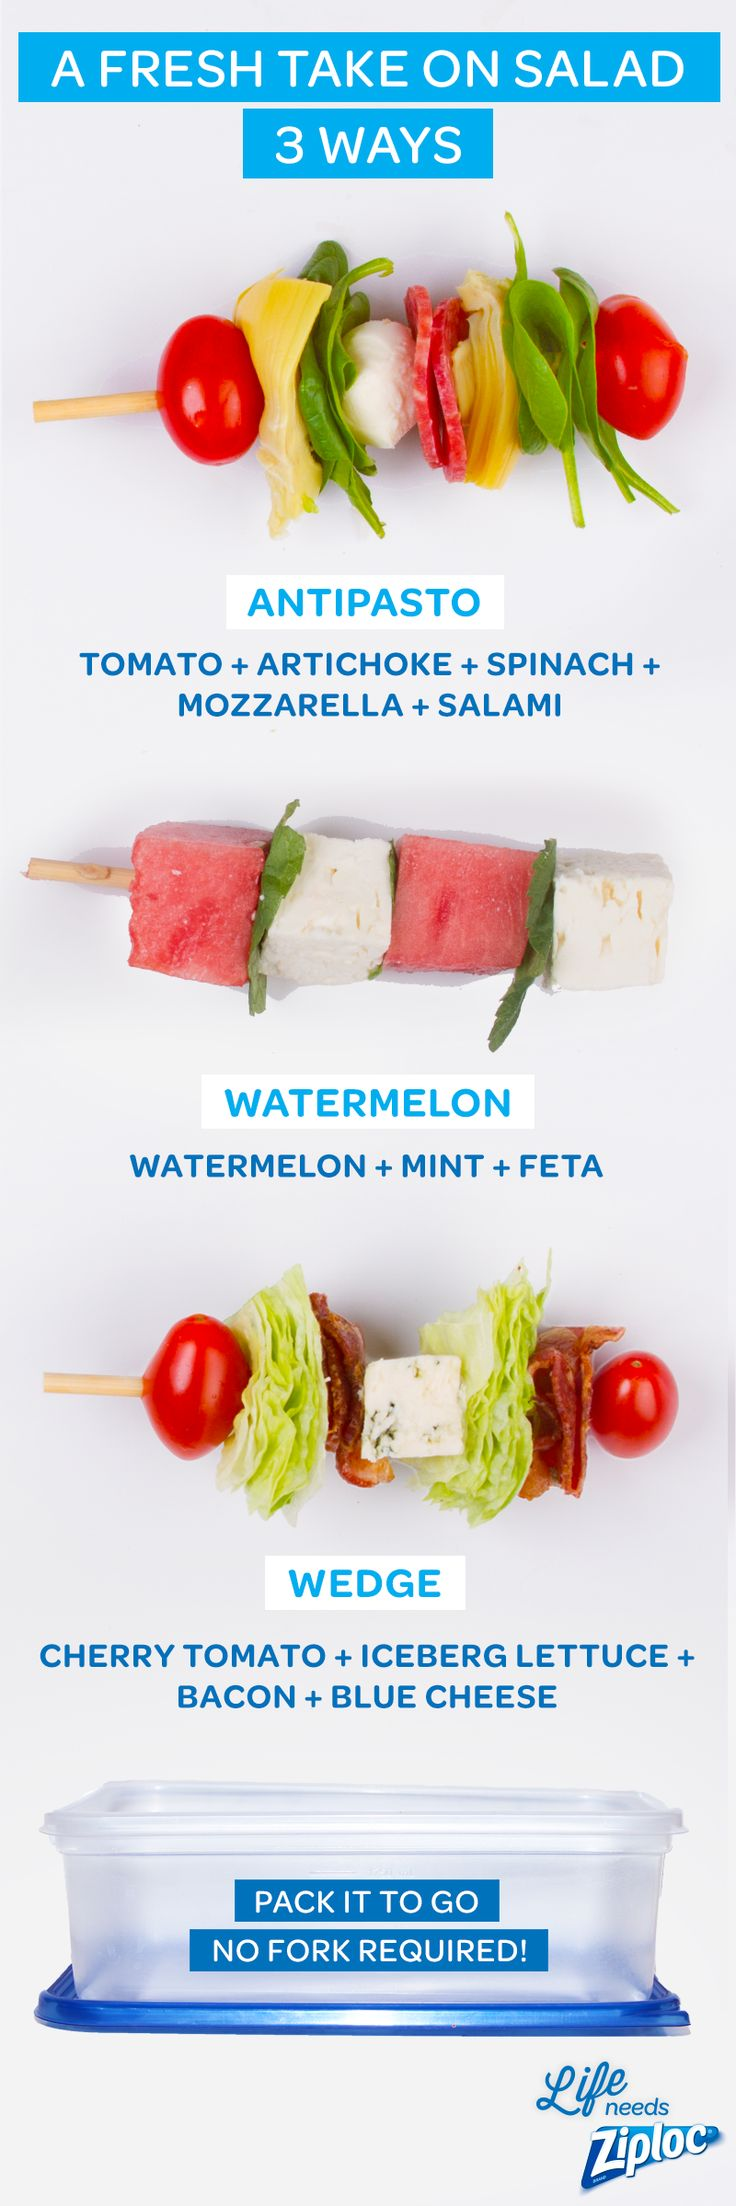 These healthy salad recipes get stacked to go on skewers and packed in a Ziploc® container. Antipasto, watermelon feta mint and wedge salad with bacon and blue cheese are simple, easy ways to make fresh finger food for a party or picnic. Bring these simple salad kabobs to a Fourth of July or Memorial Day potluck this summer.